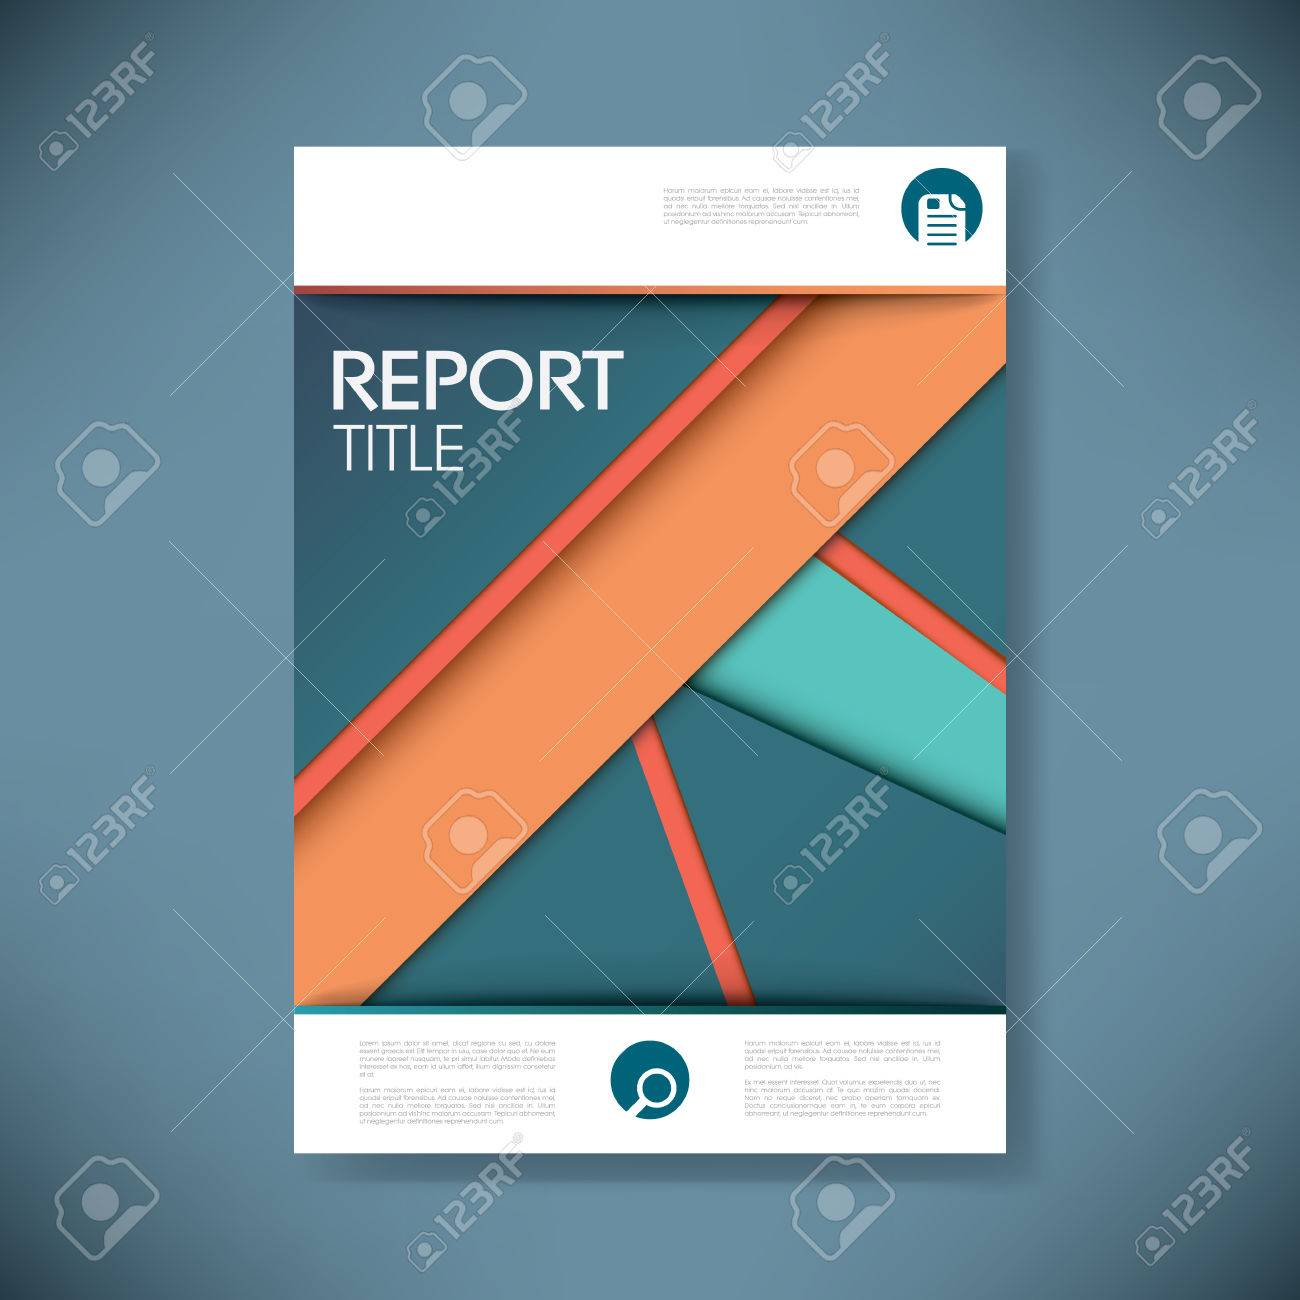 report cover template for business presentation or brochure report cover template for business presentation or brochure vibrant and colorful material design style vector